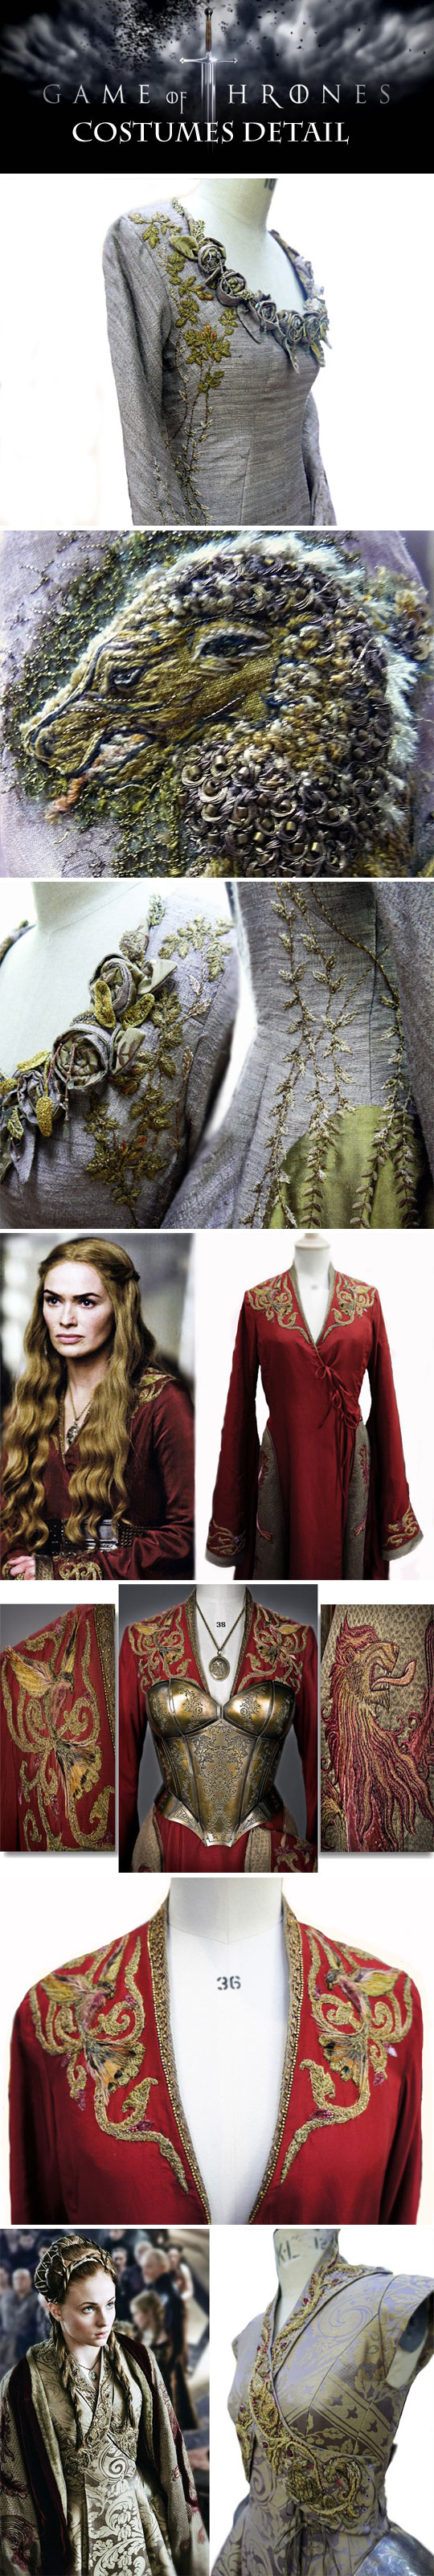 Game of Thrones costumes detail...